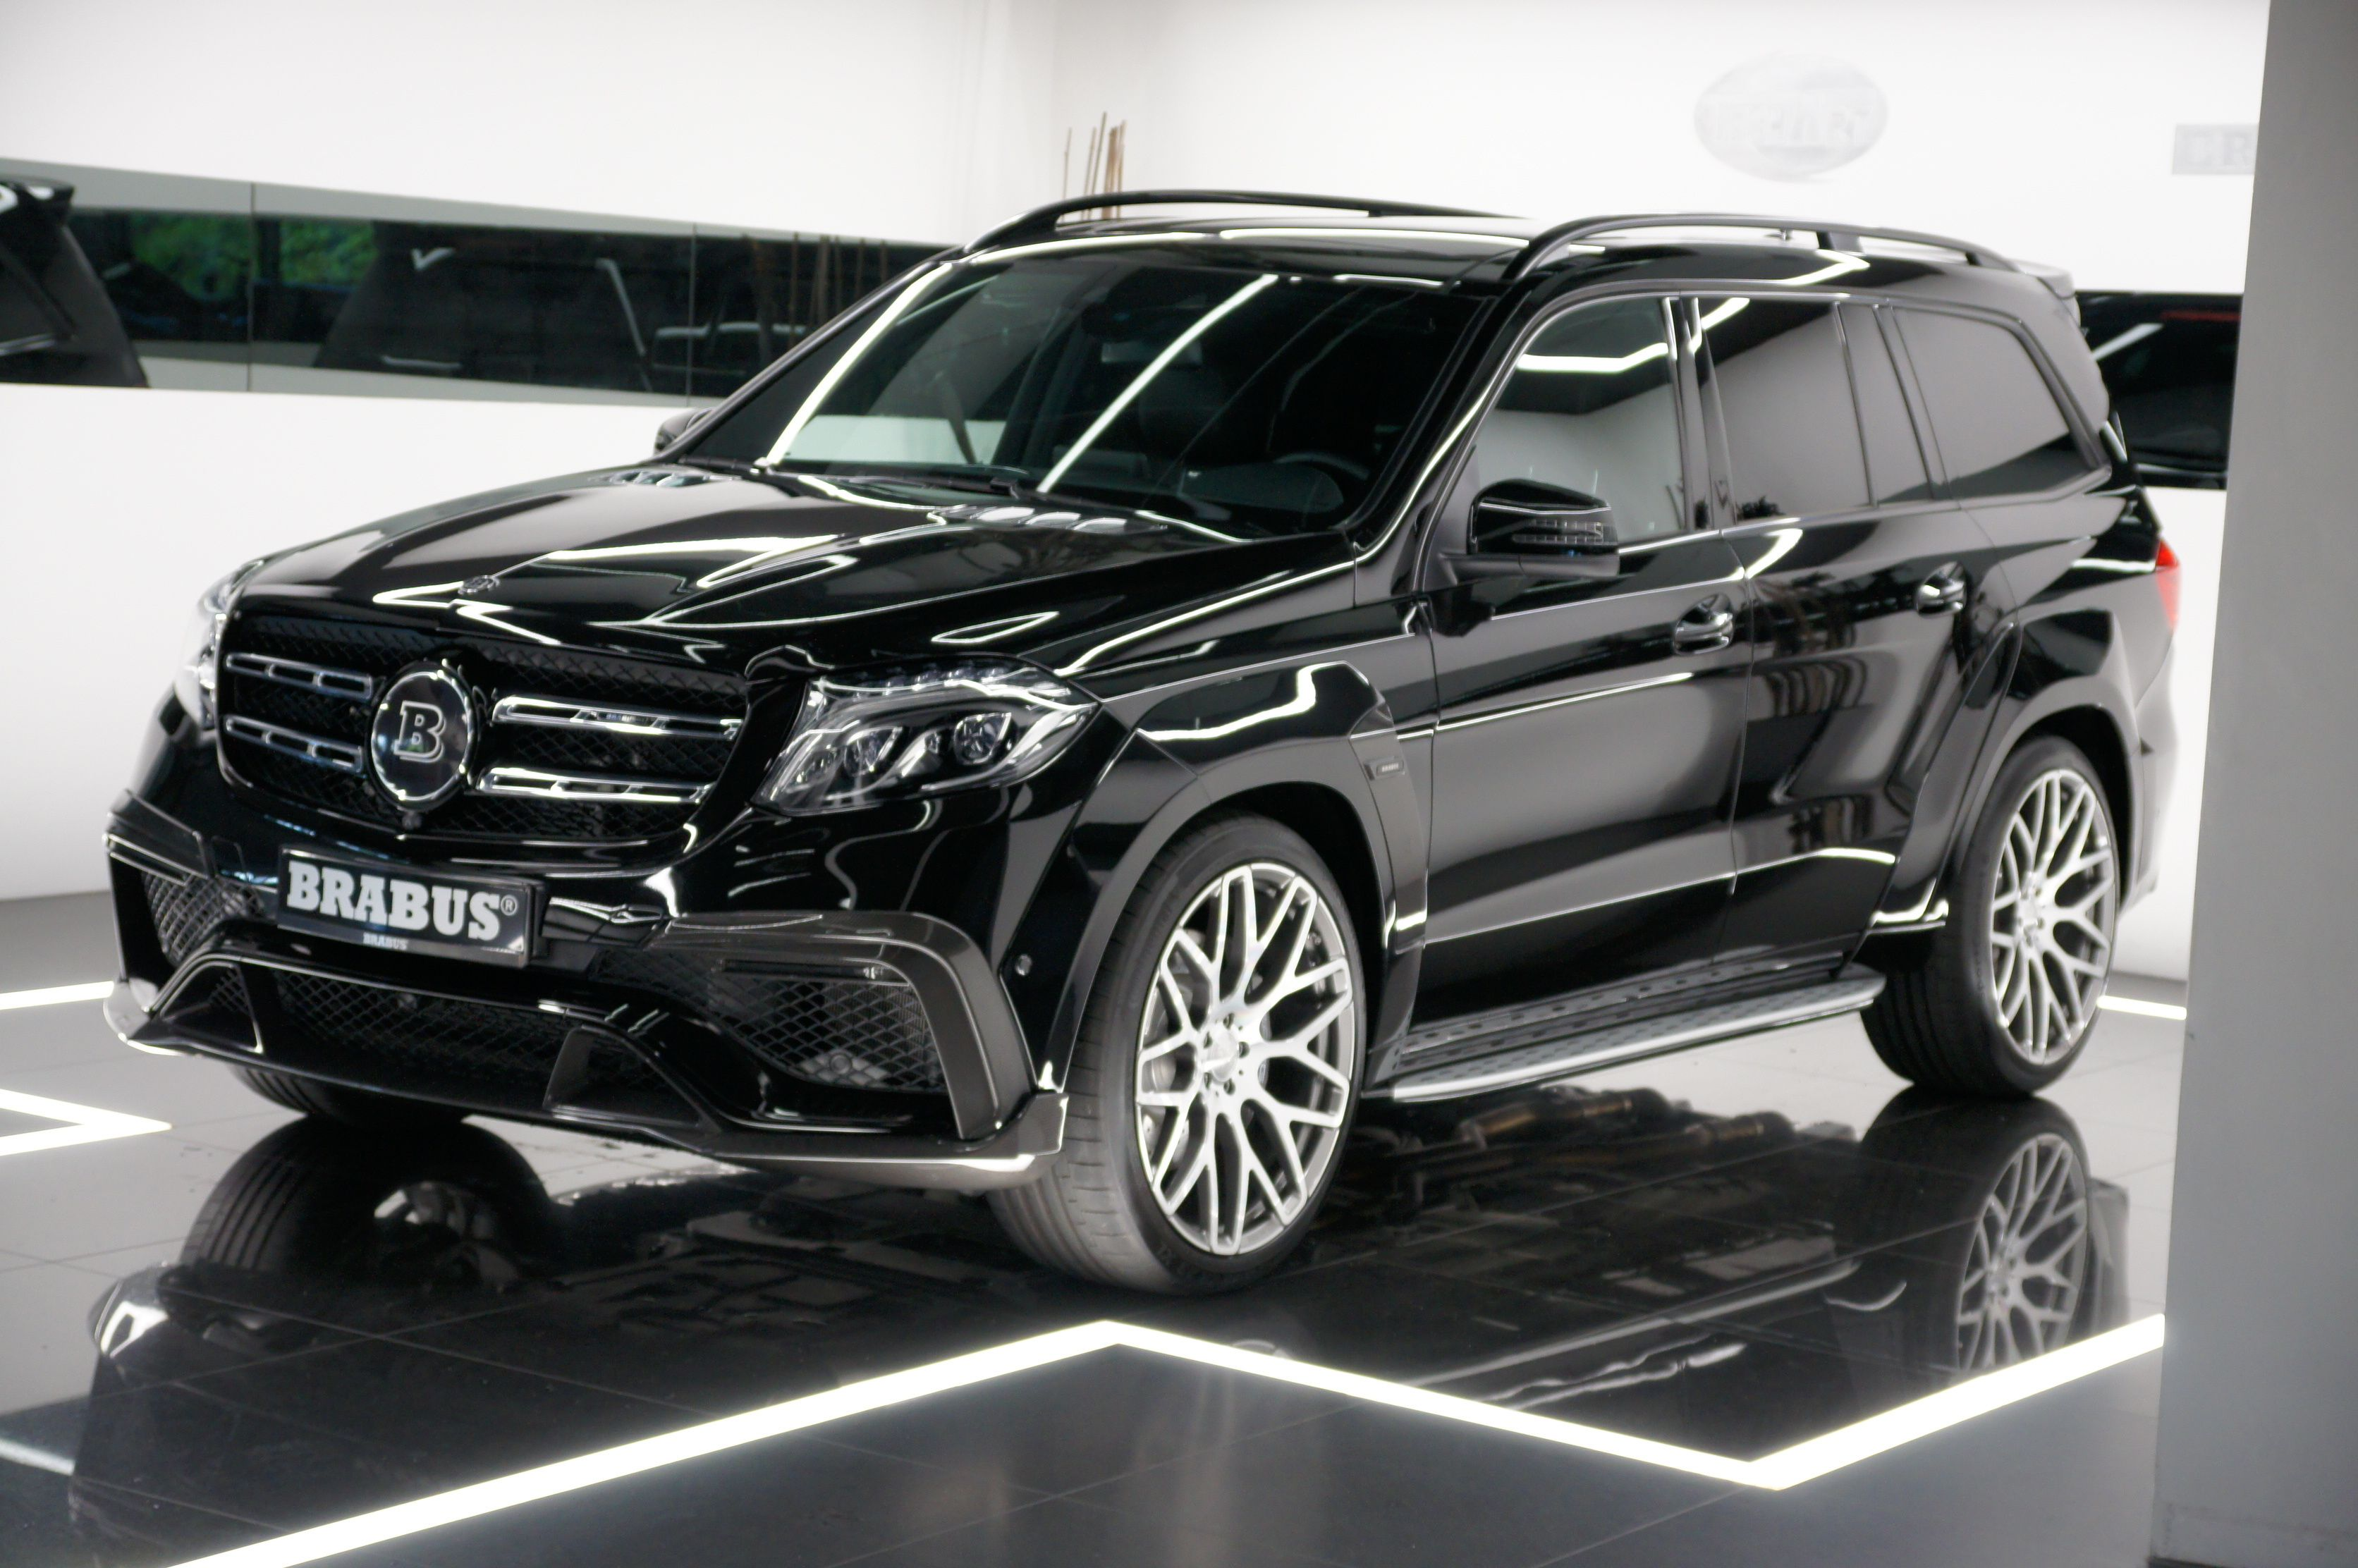 Full Option Mb Gls 63 Amg Brabus Widestar Bodykit Carbon